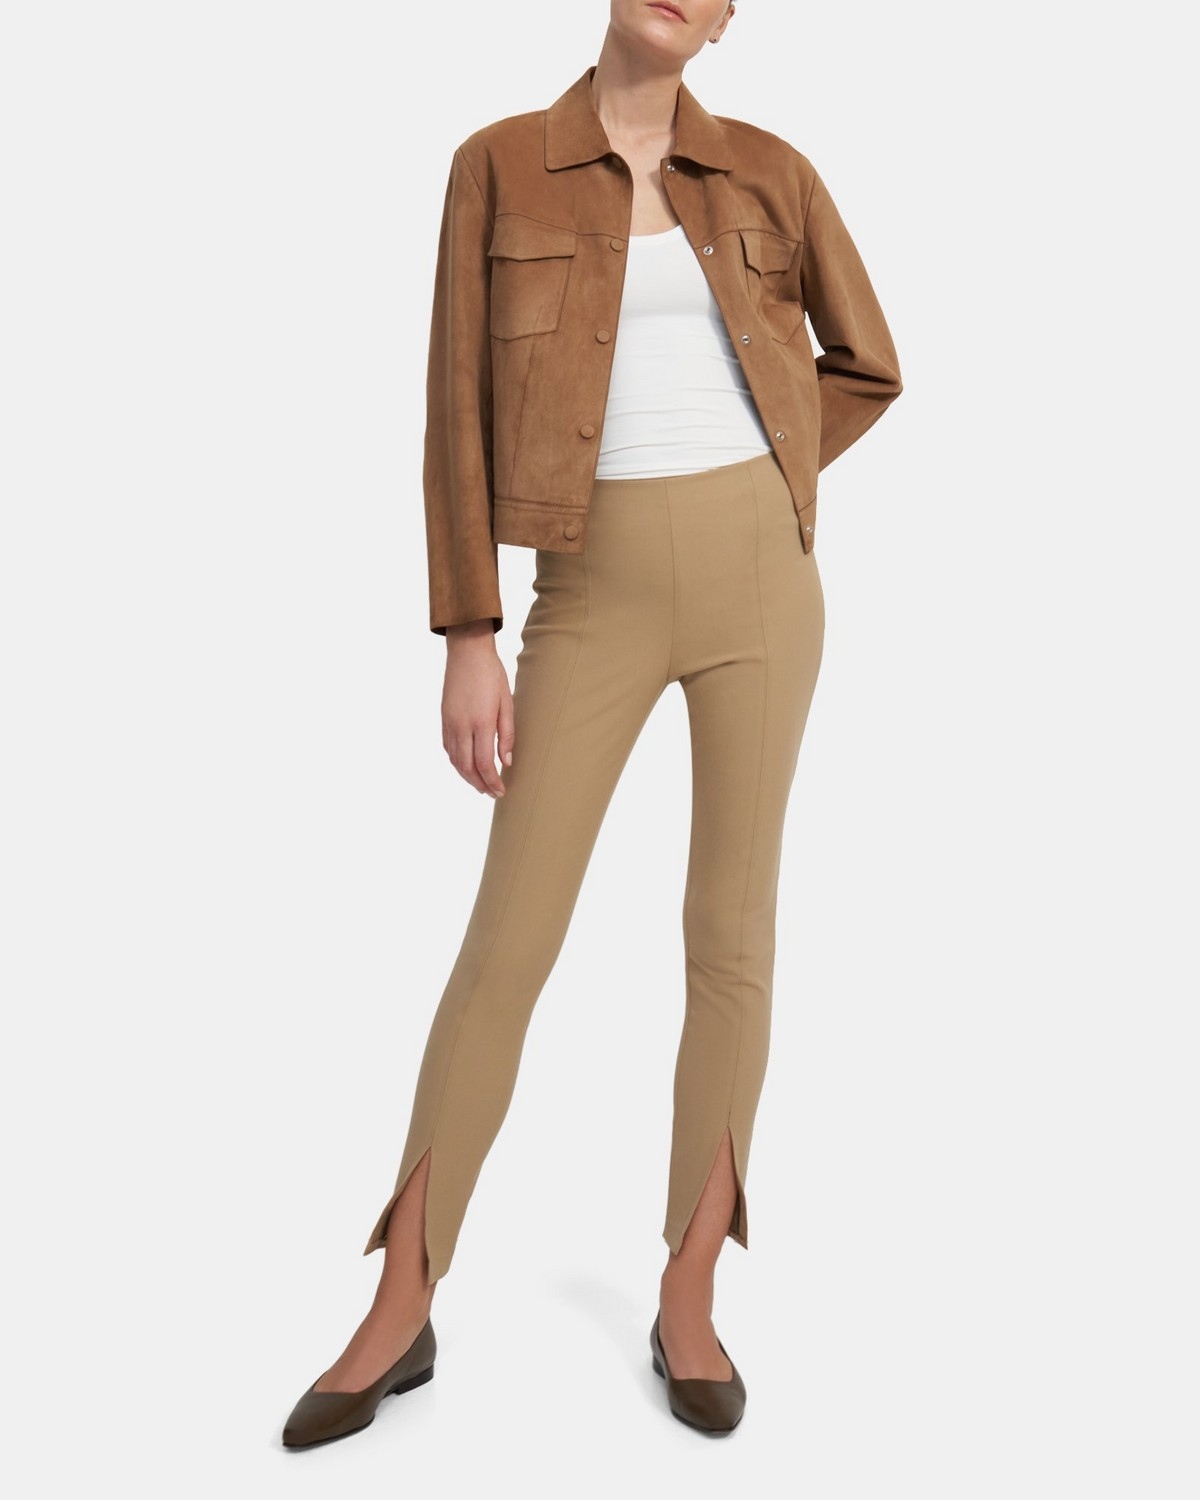 Slit Legging in Eco Stretch Cotton